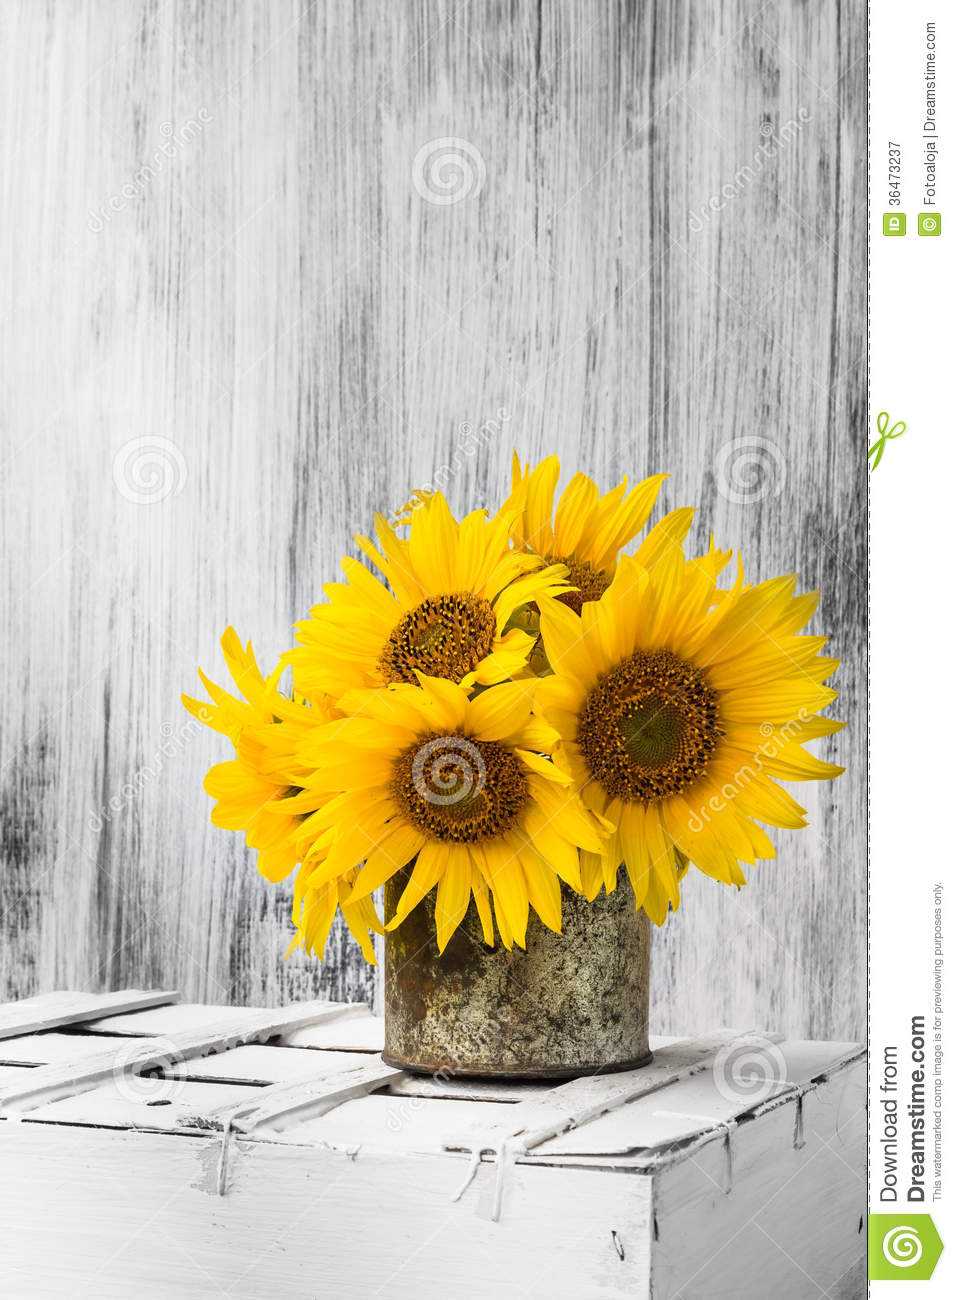 Download Background Still Life Flower Sunflower Wooden White Vintage Stock Image